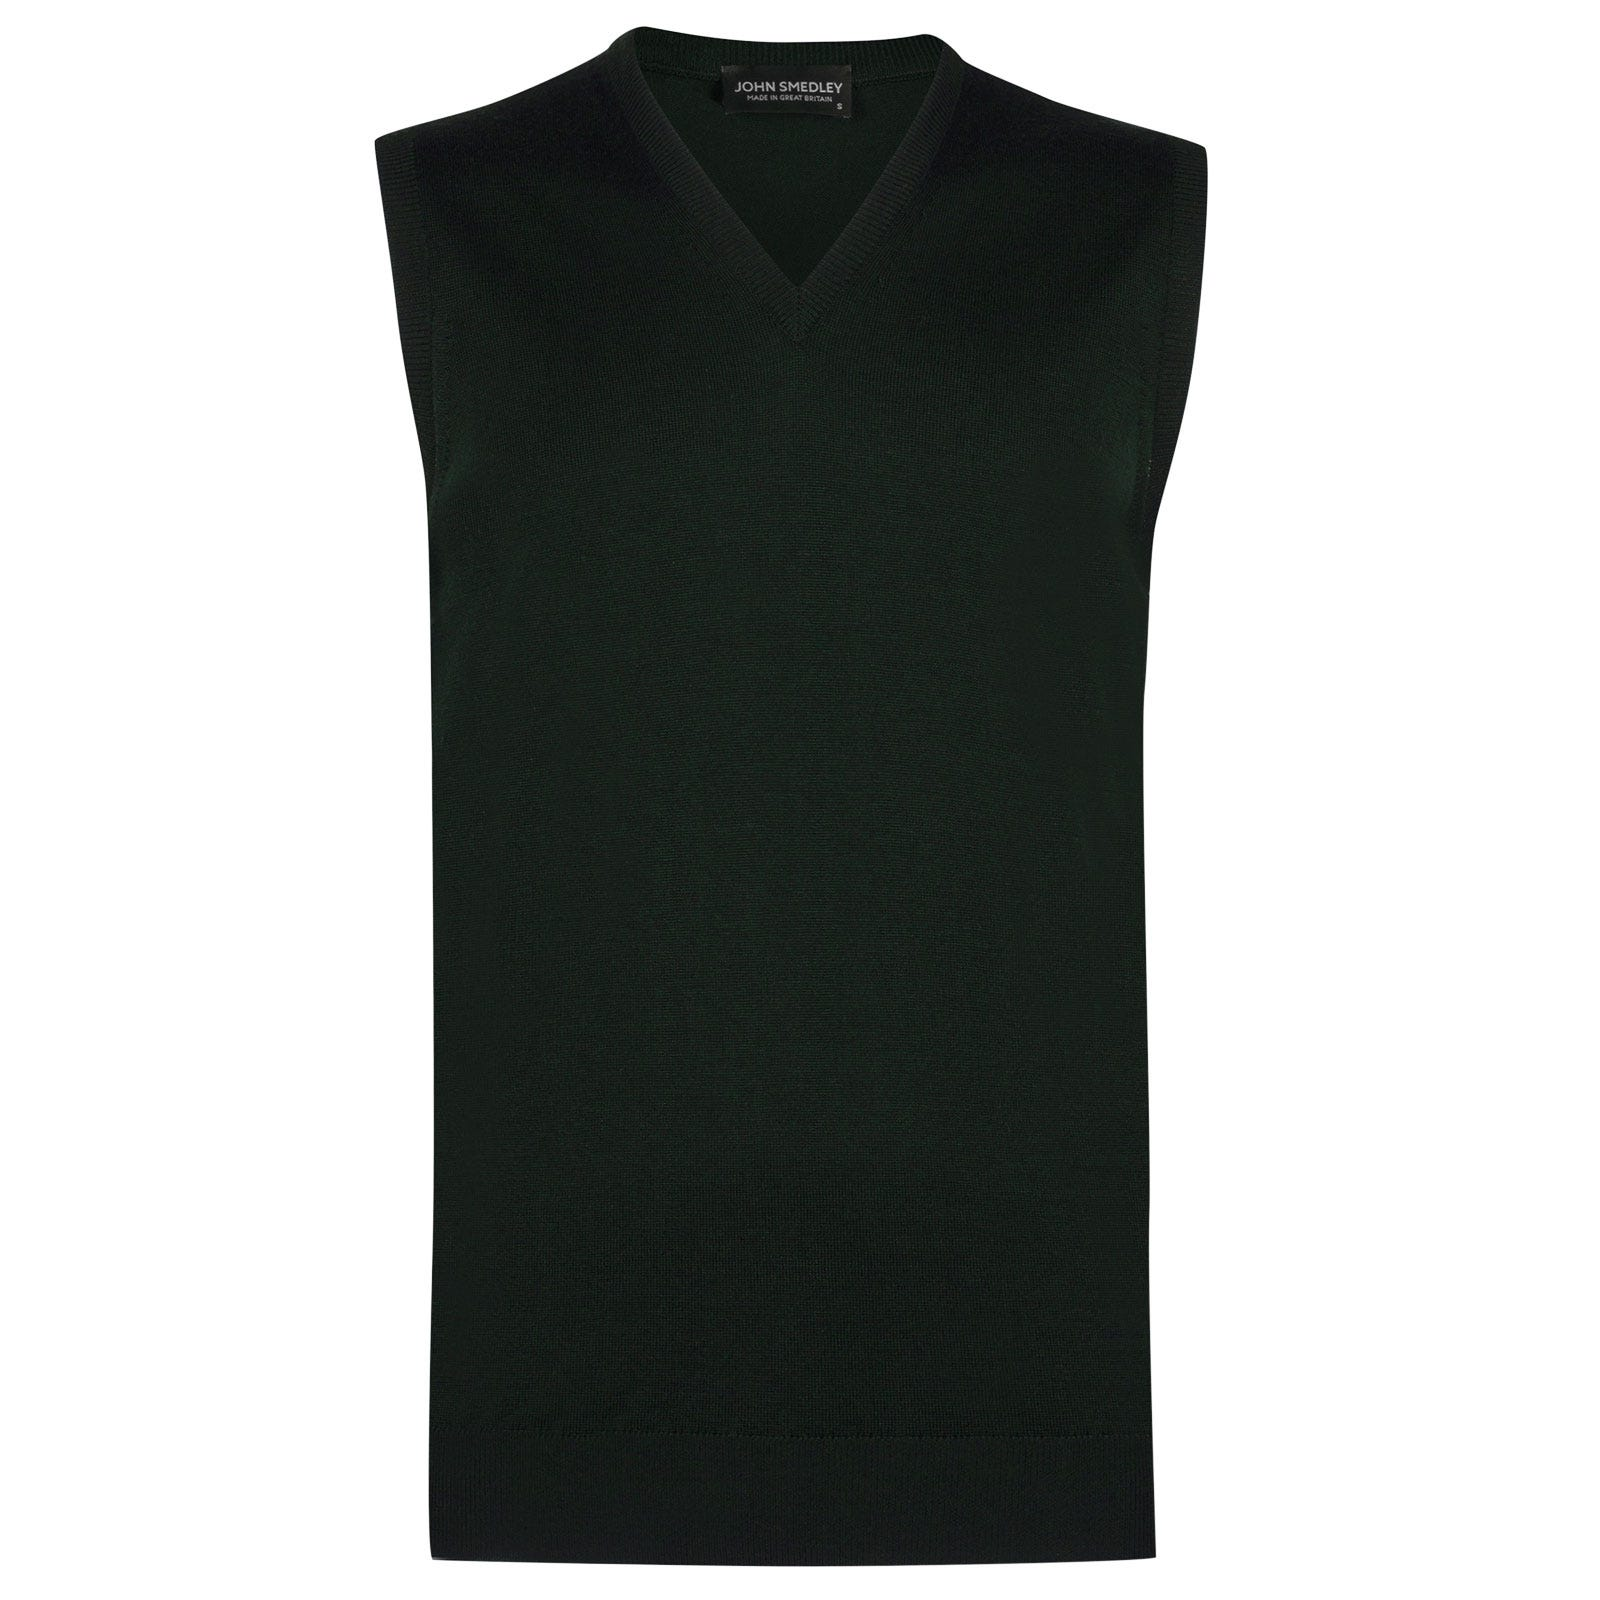 John Smedley hadfield Merino Wool Slipover in Racing Green-L